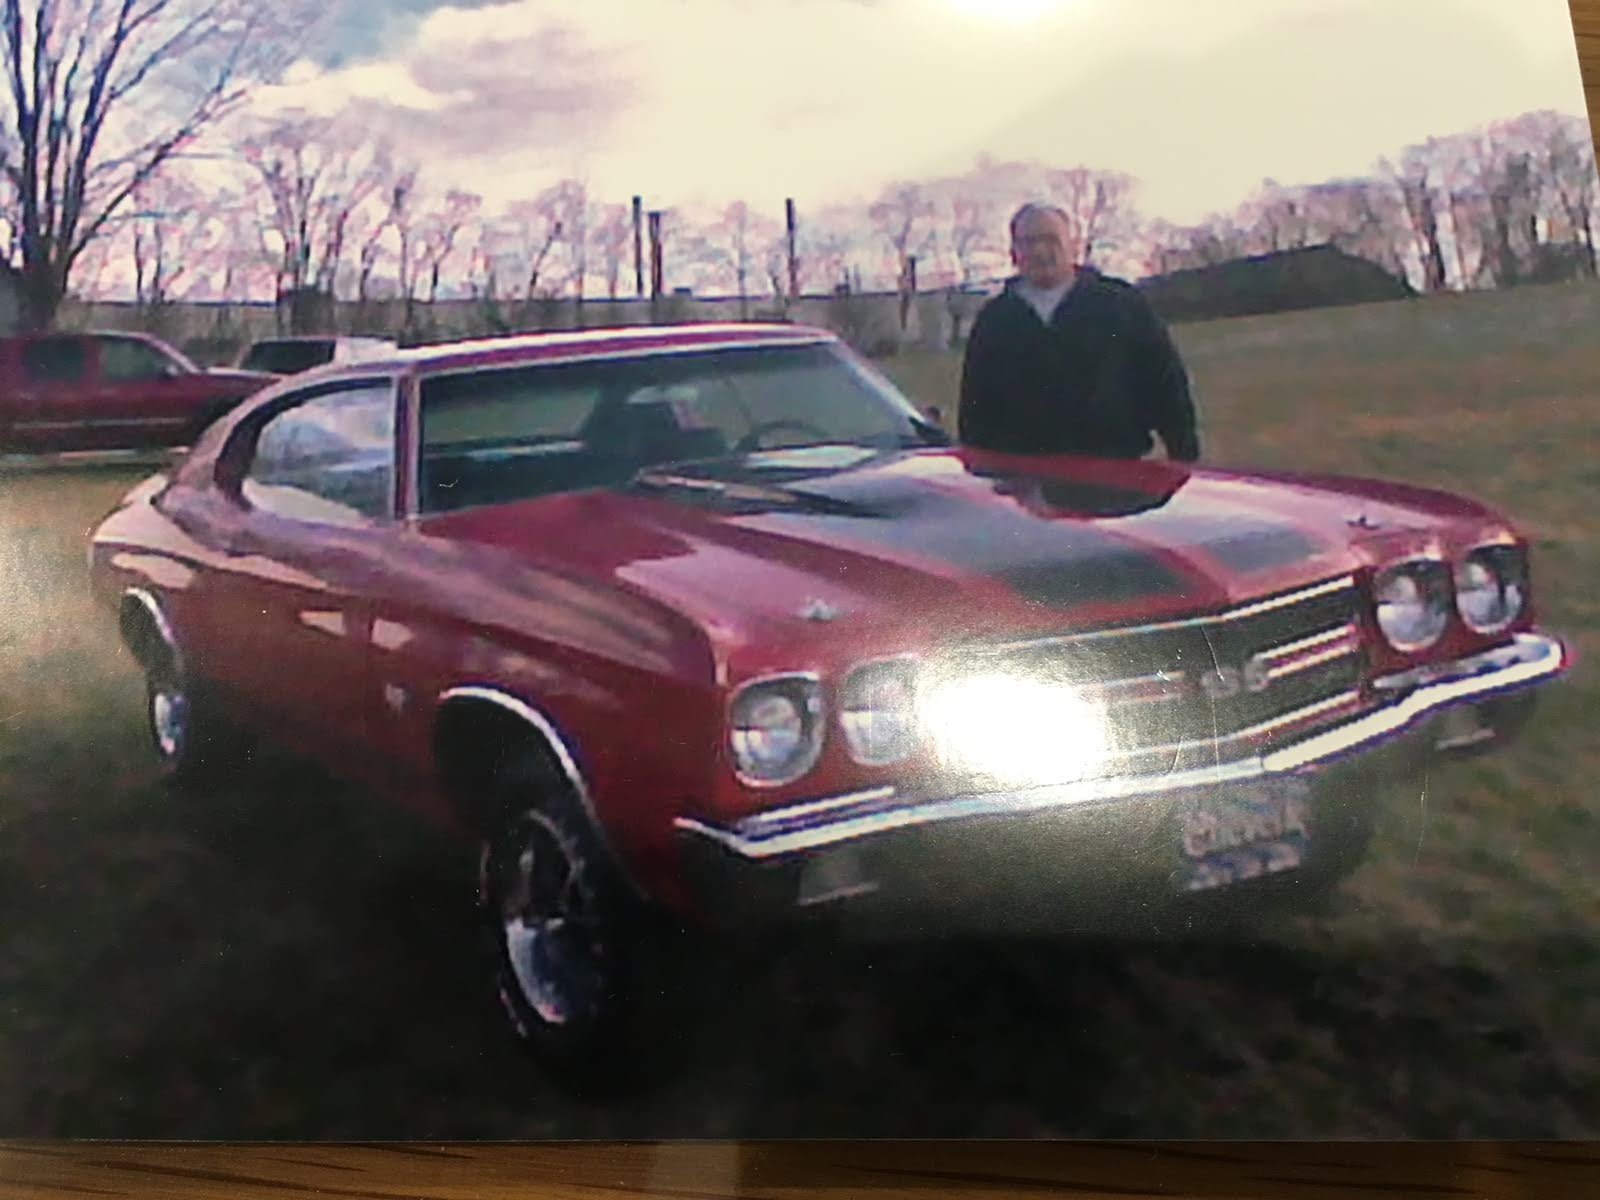 Chevrolet Chevelle Questions - 1970 Chevelle SS with cowl